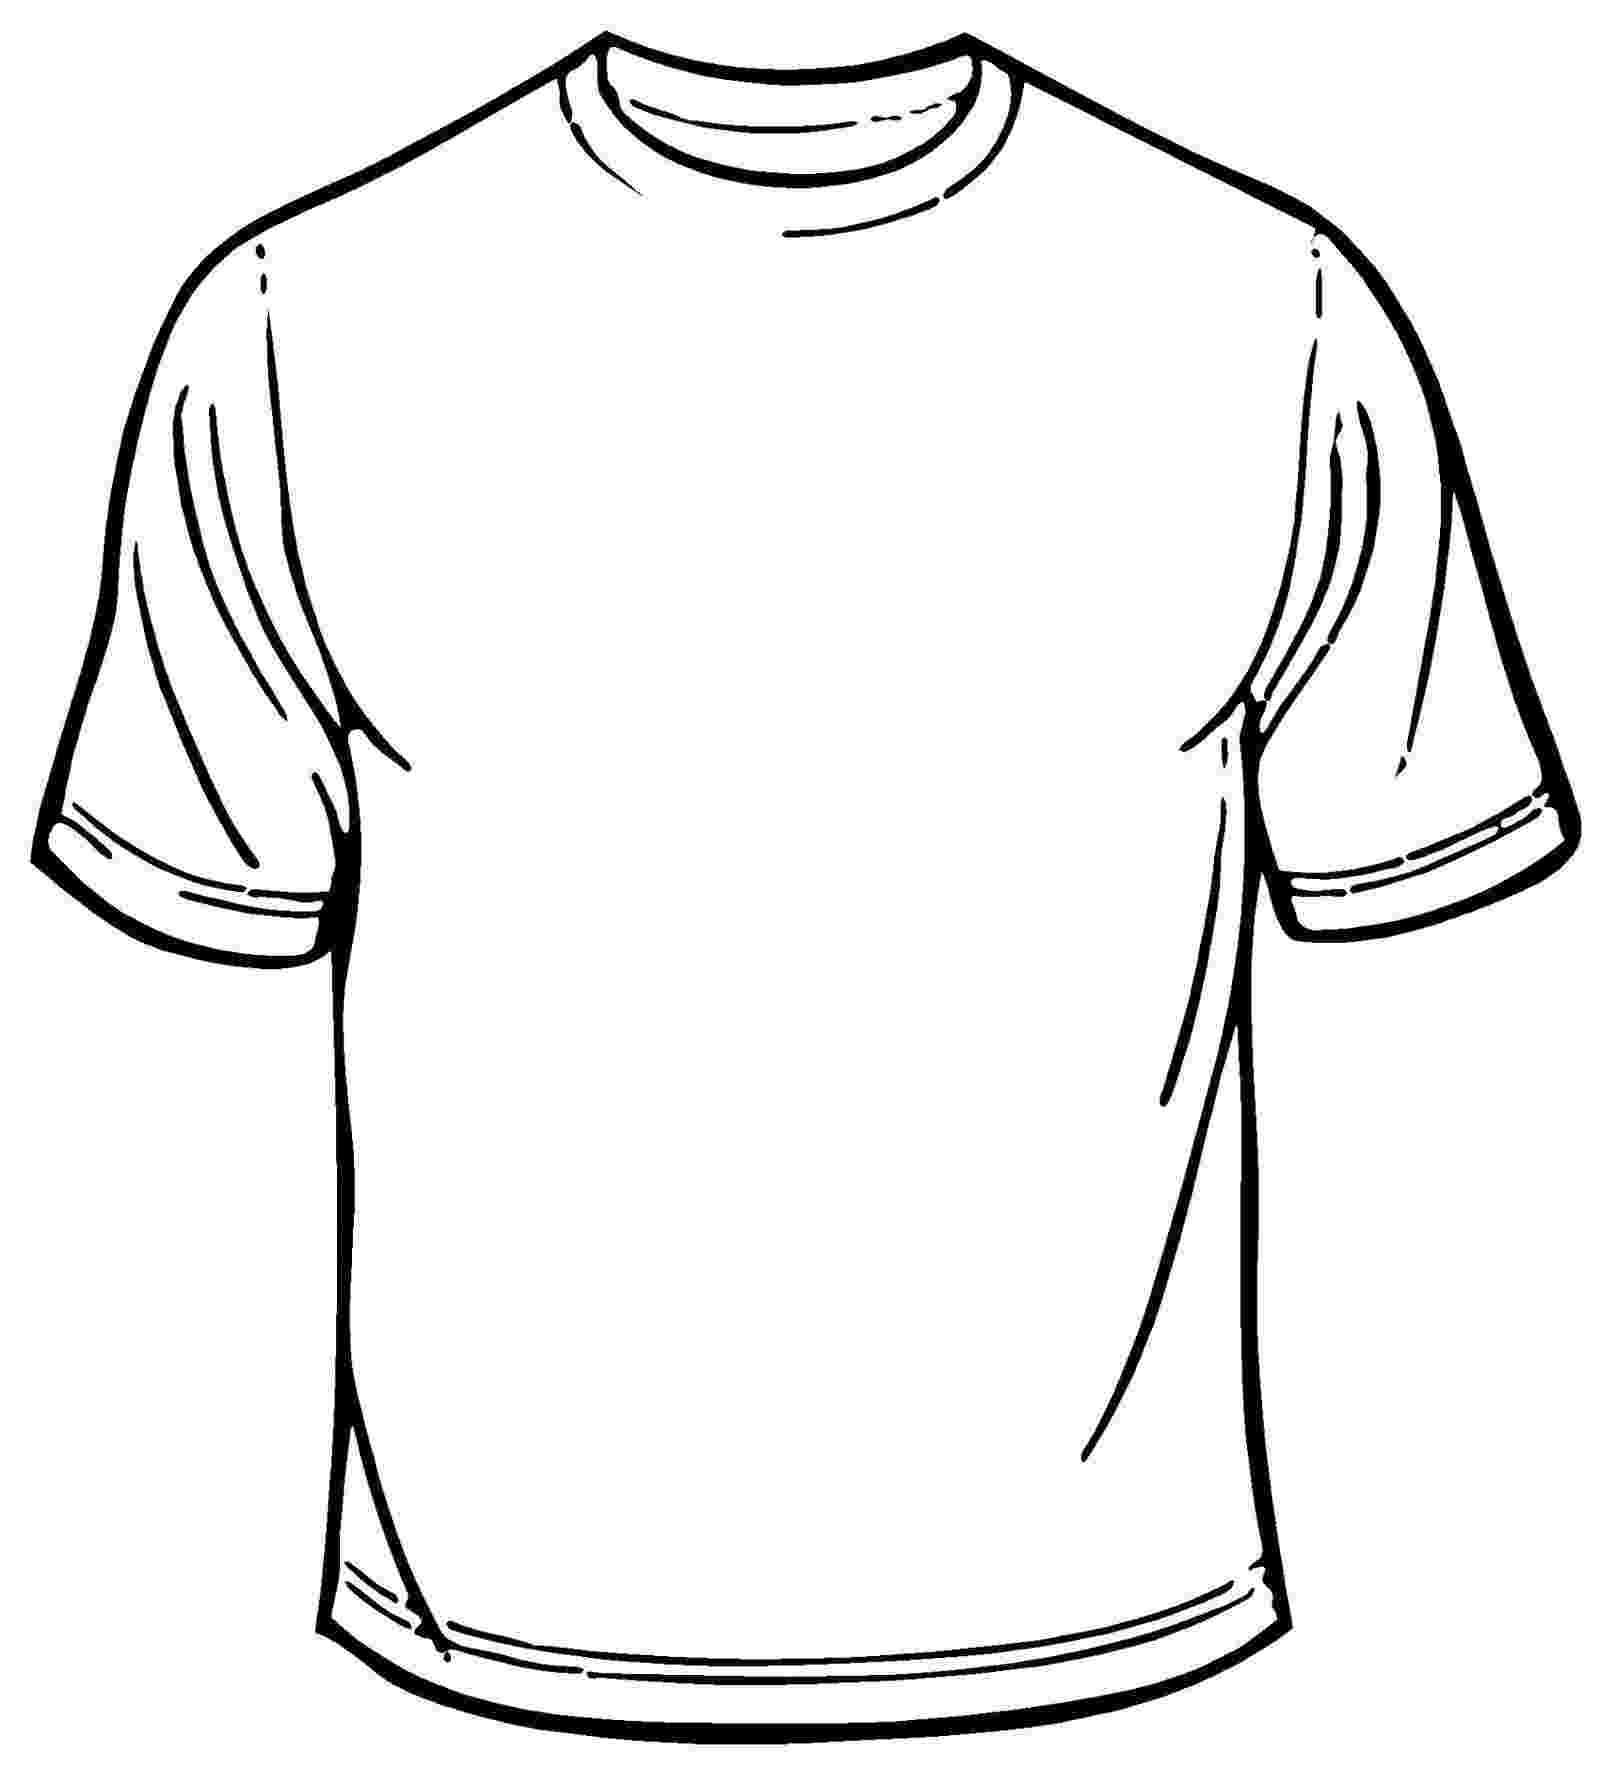 t shirt coloring page t shirt outline printable clipart best coloring t shirt page